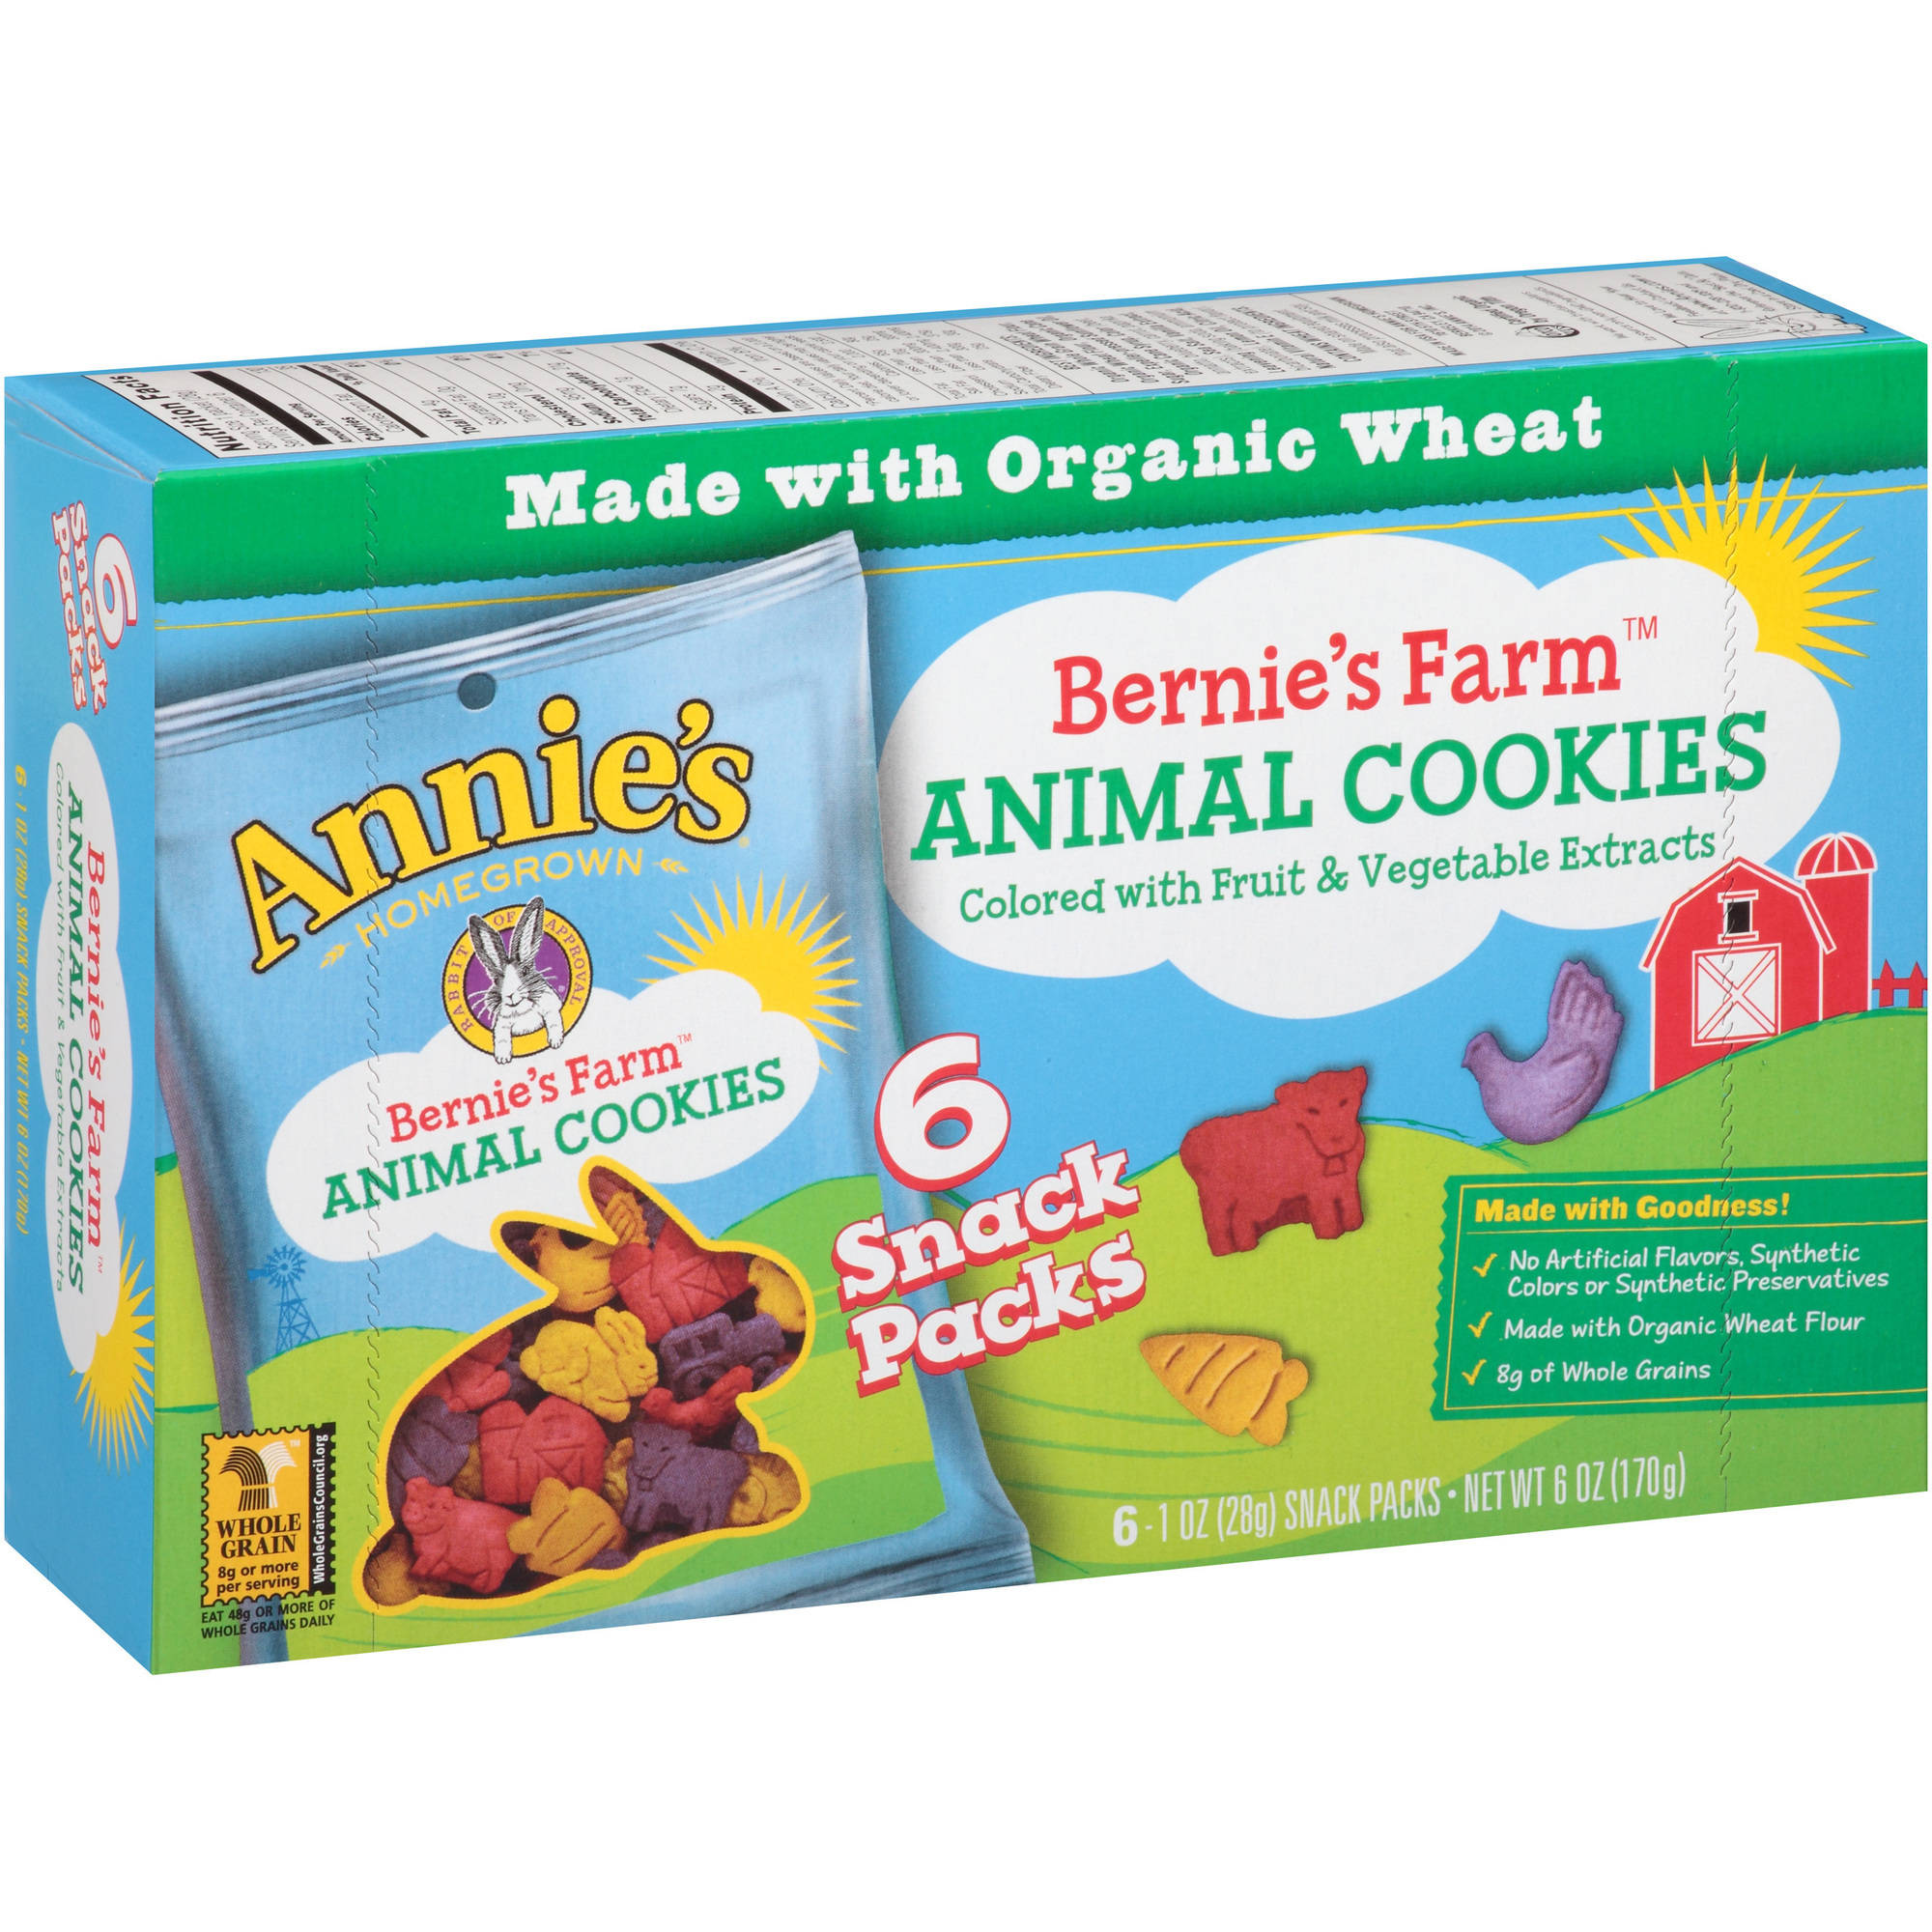 Annie's Homegrown Bernie's Farm Animal Cookies, 1 oz, 6 count (Pack of 6)